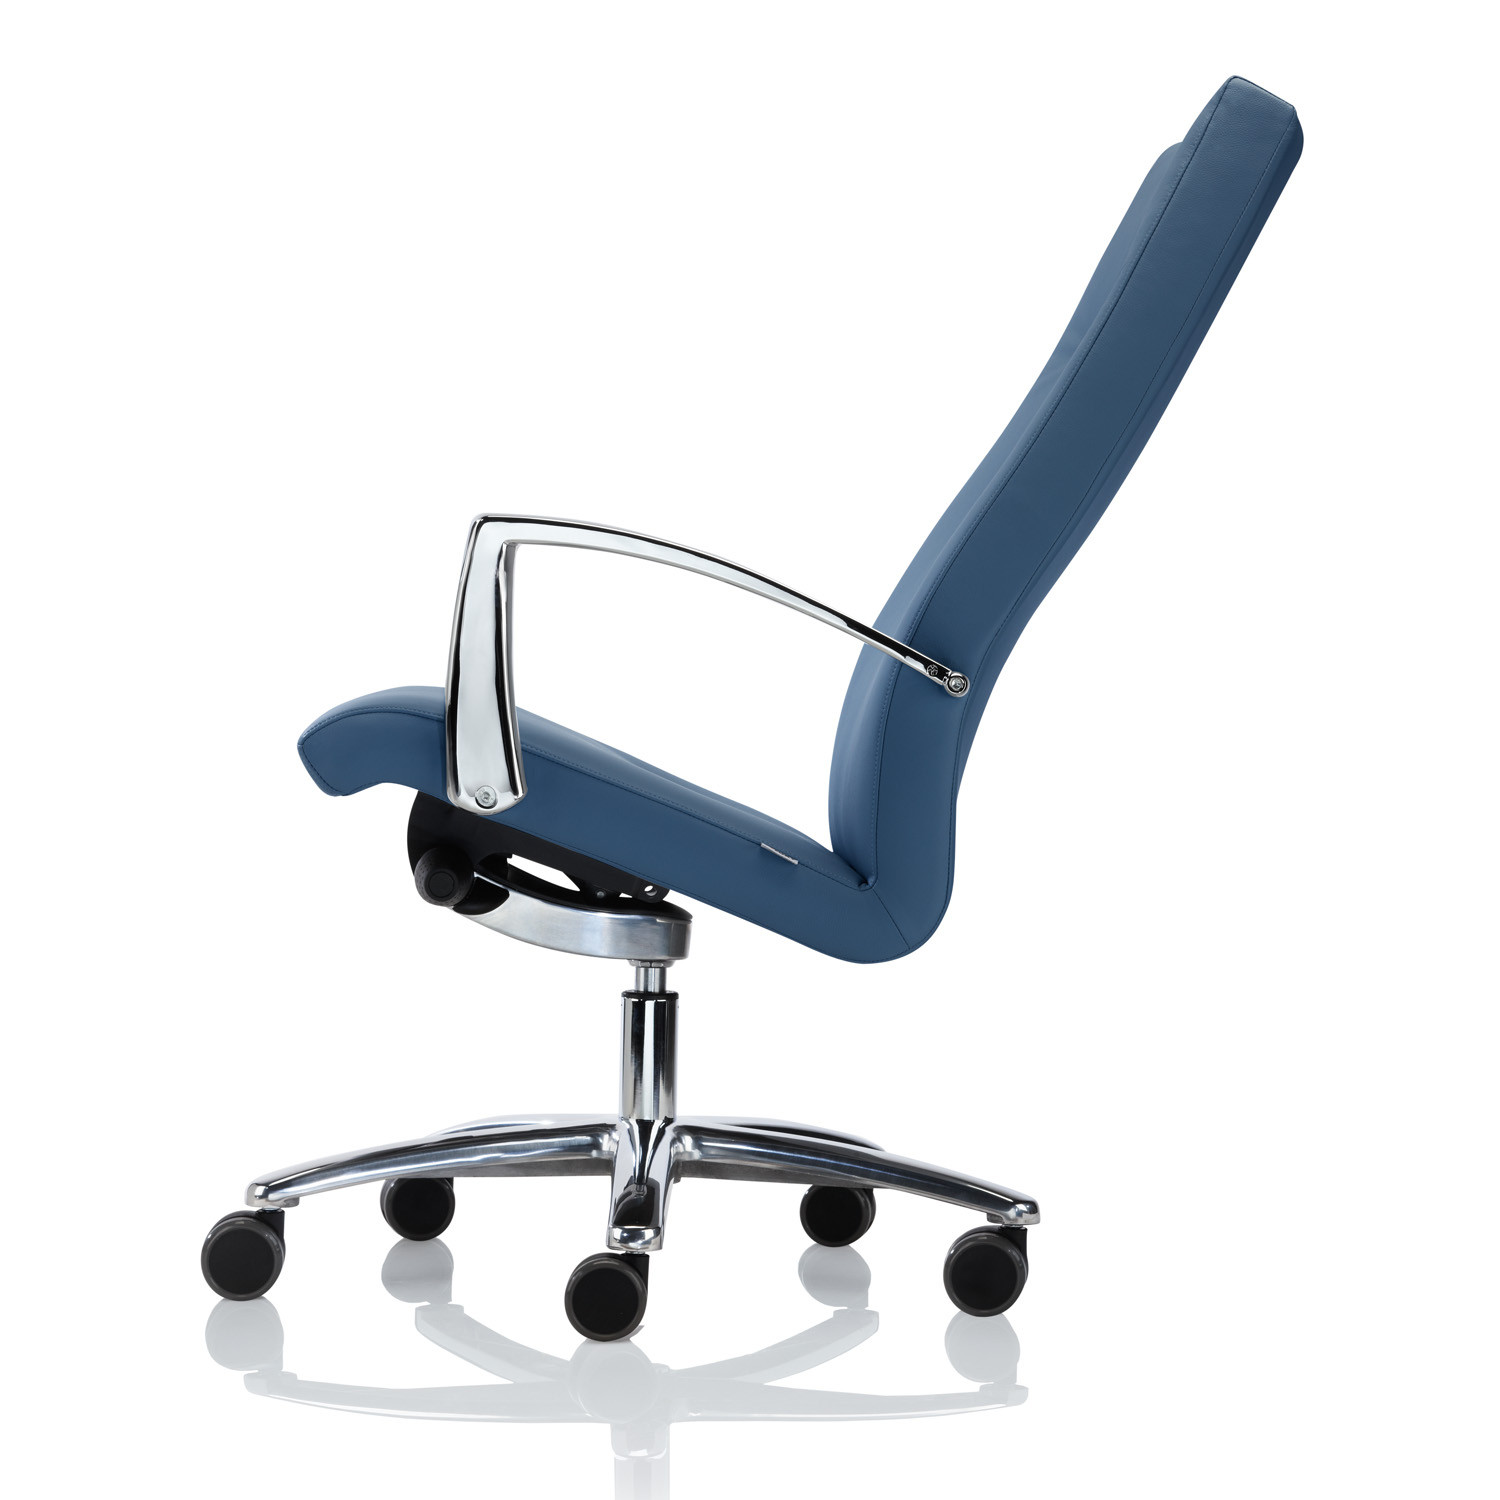 Youster Executive Chair features adjustment mechanisms